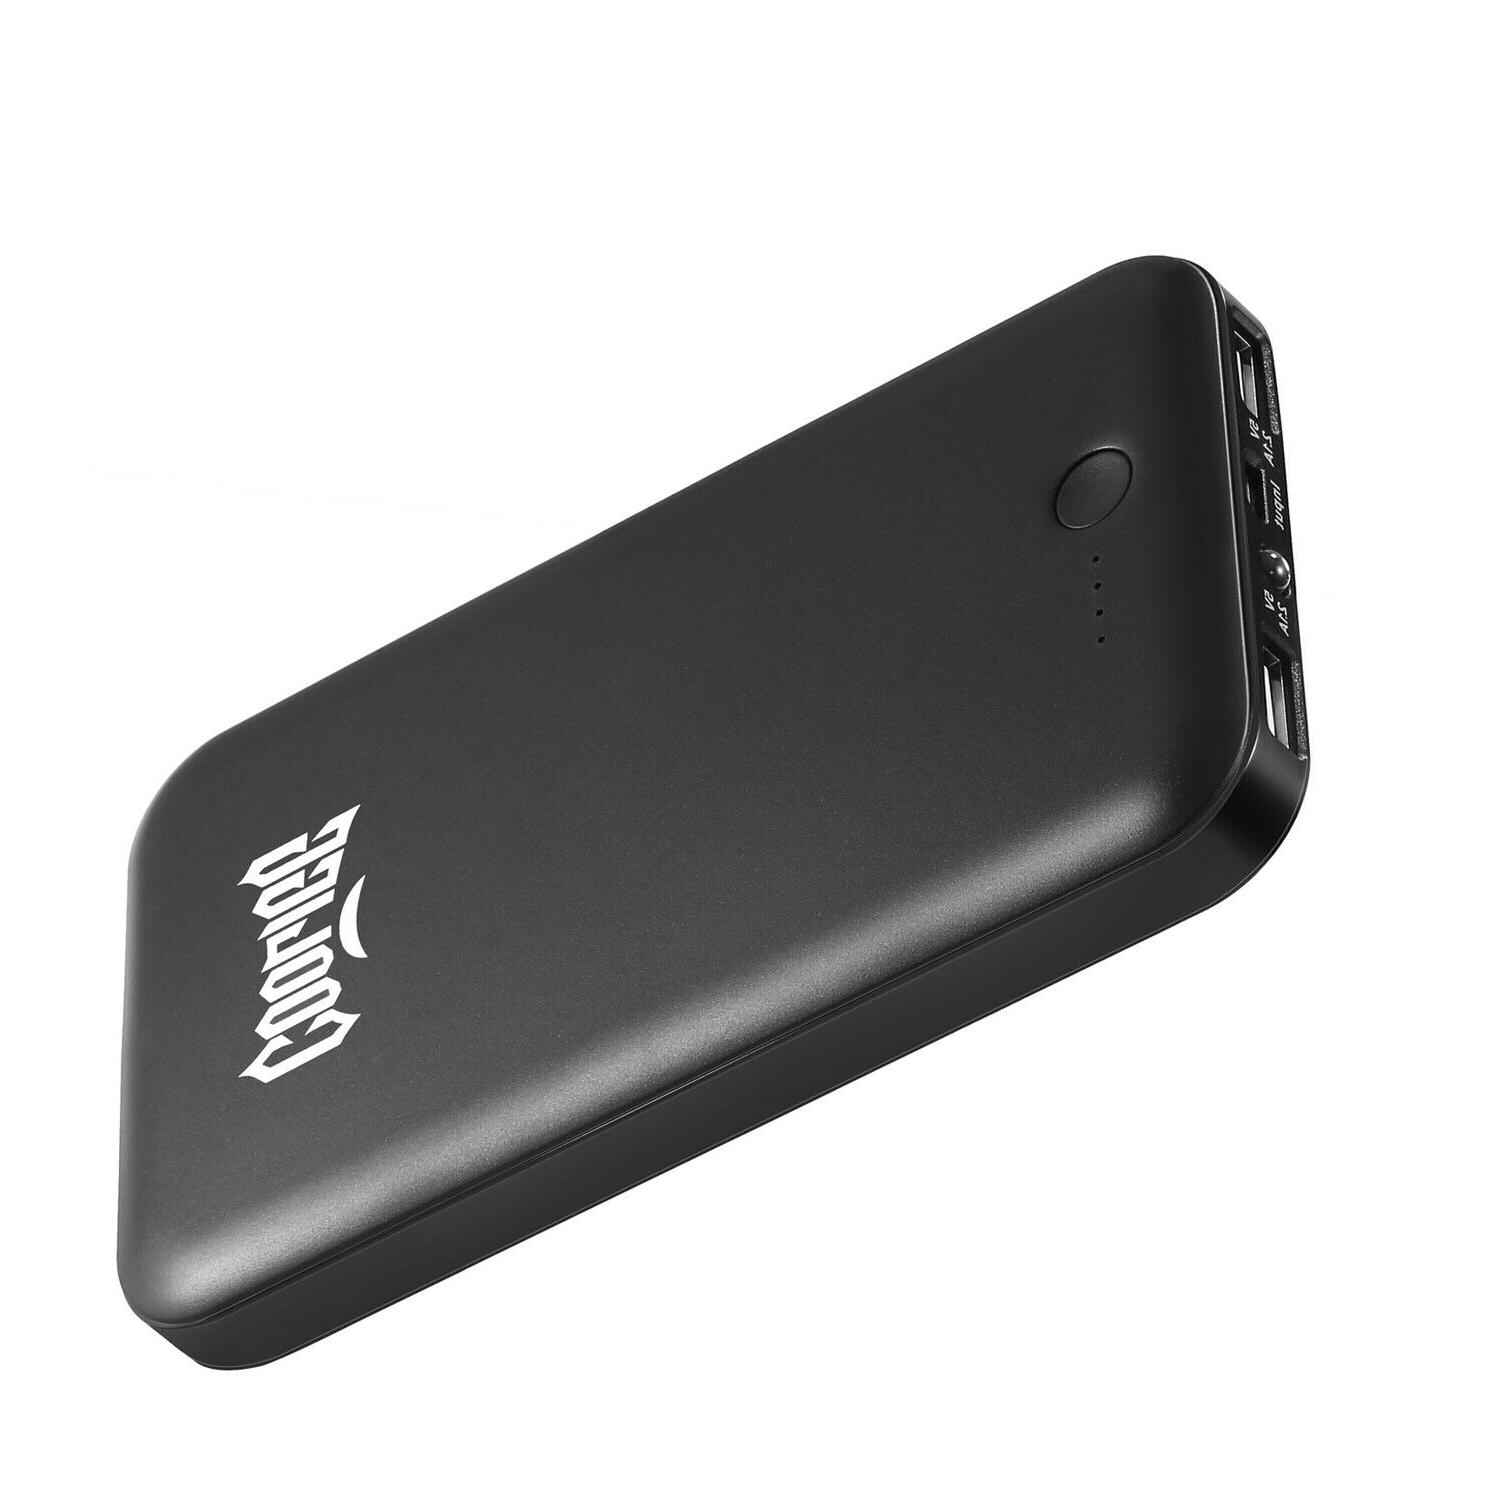 Cooligg 10000mAh Portable Battery for Phone